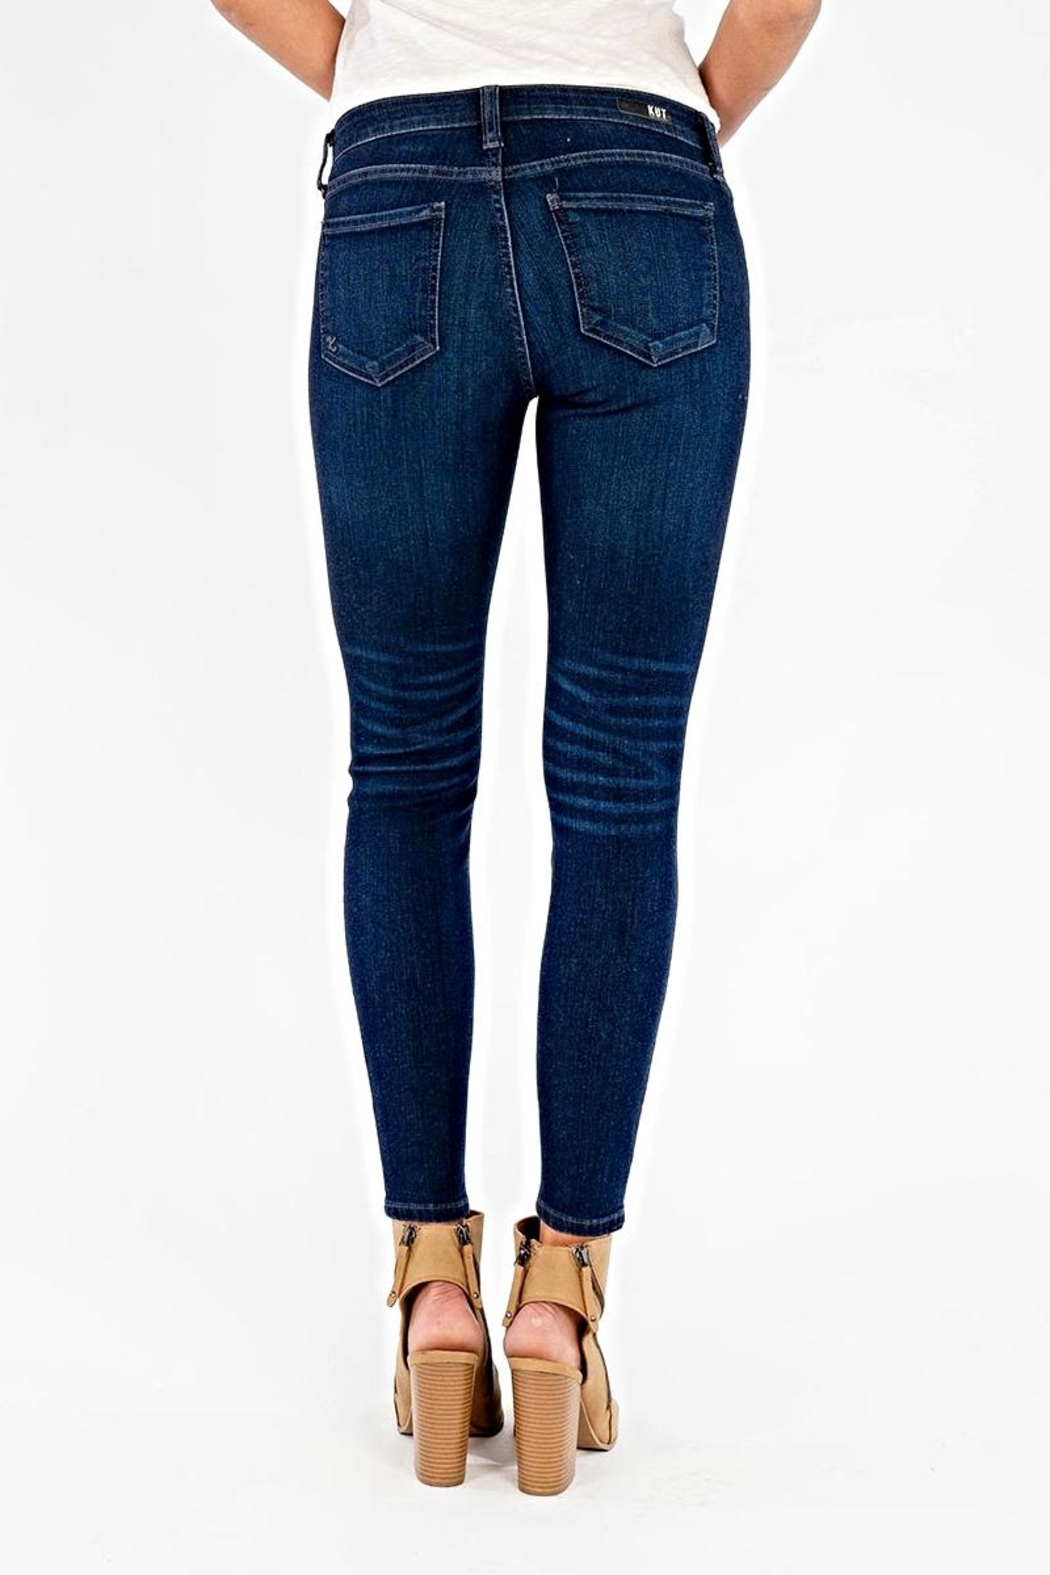 Kut from the Kloth Connie Ankle Skinny - Back Cropped Image